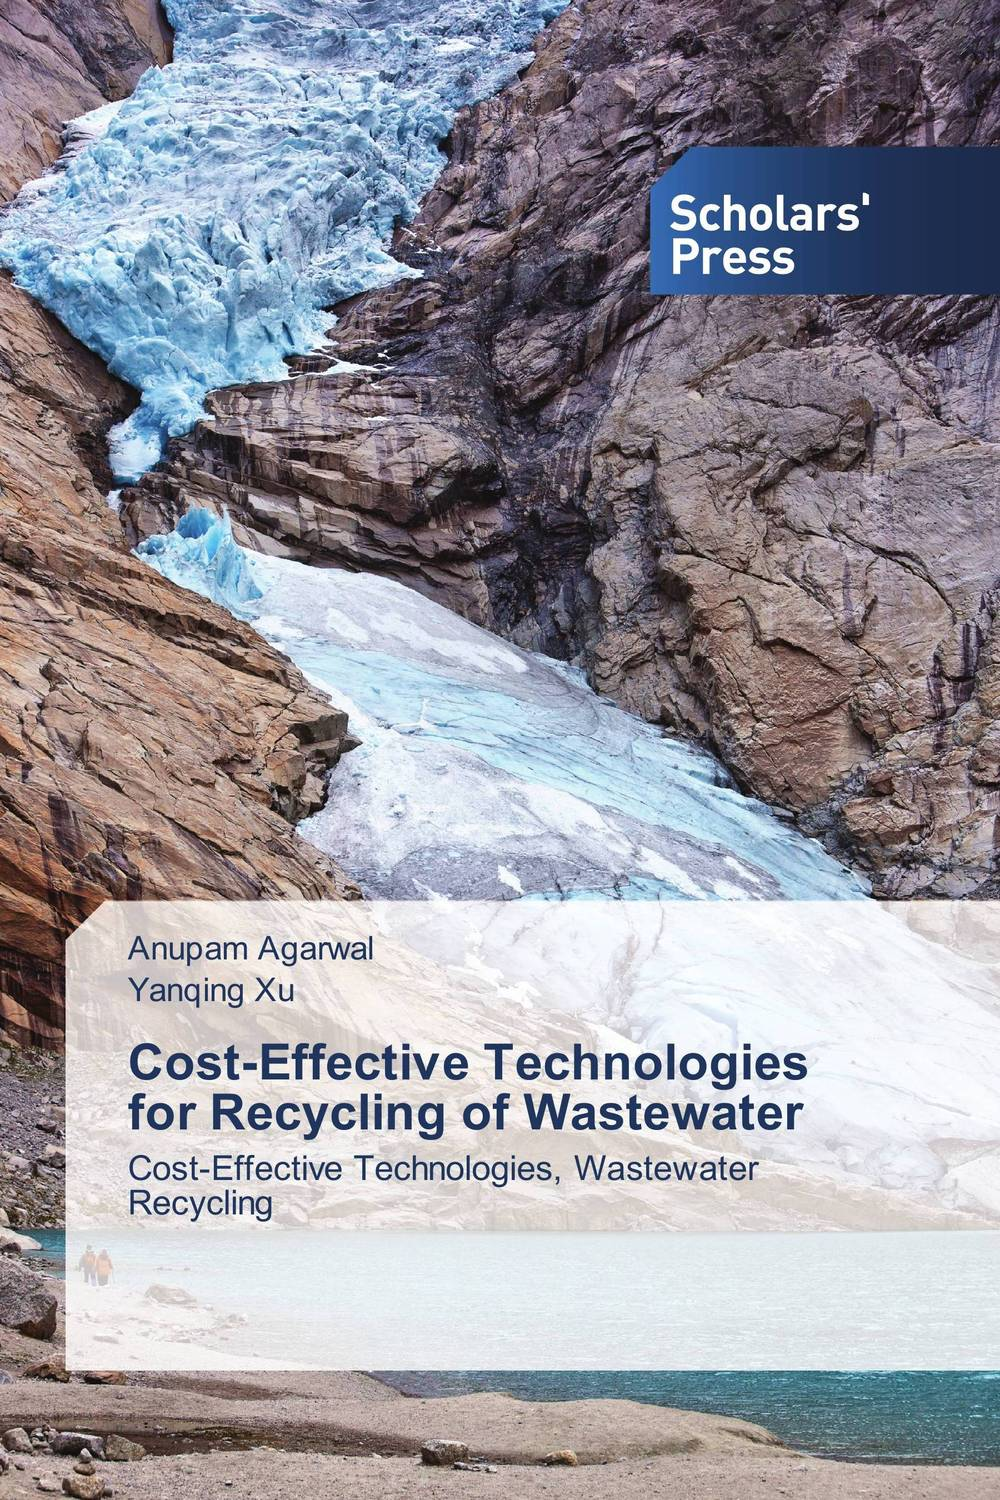 Cost-Effective Technologies for Recycling of Wastewater recycle and reuse of waste water for a railway station